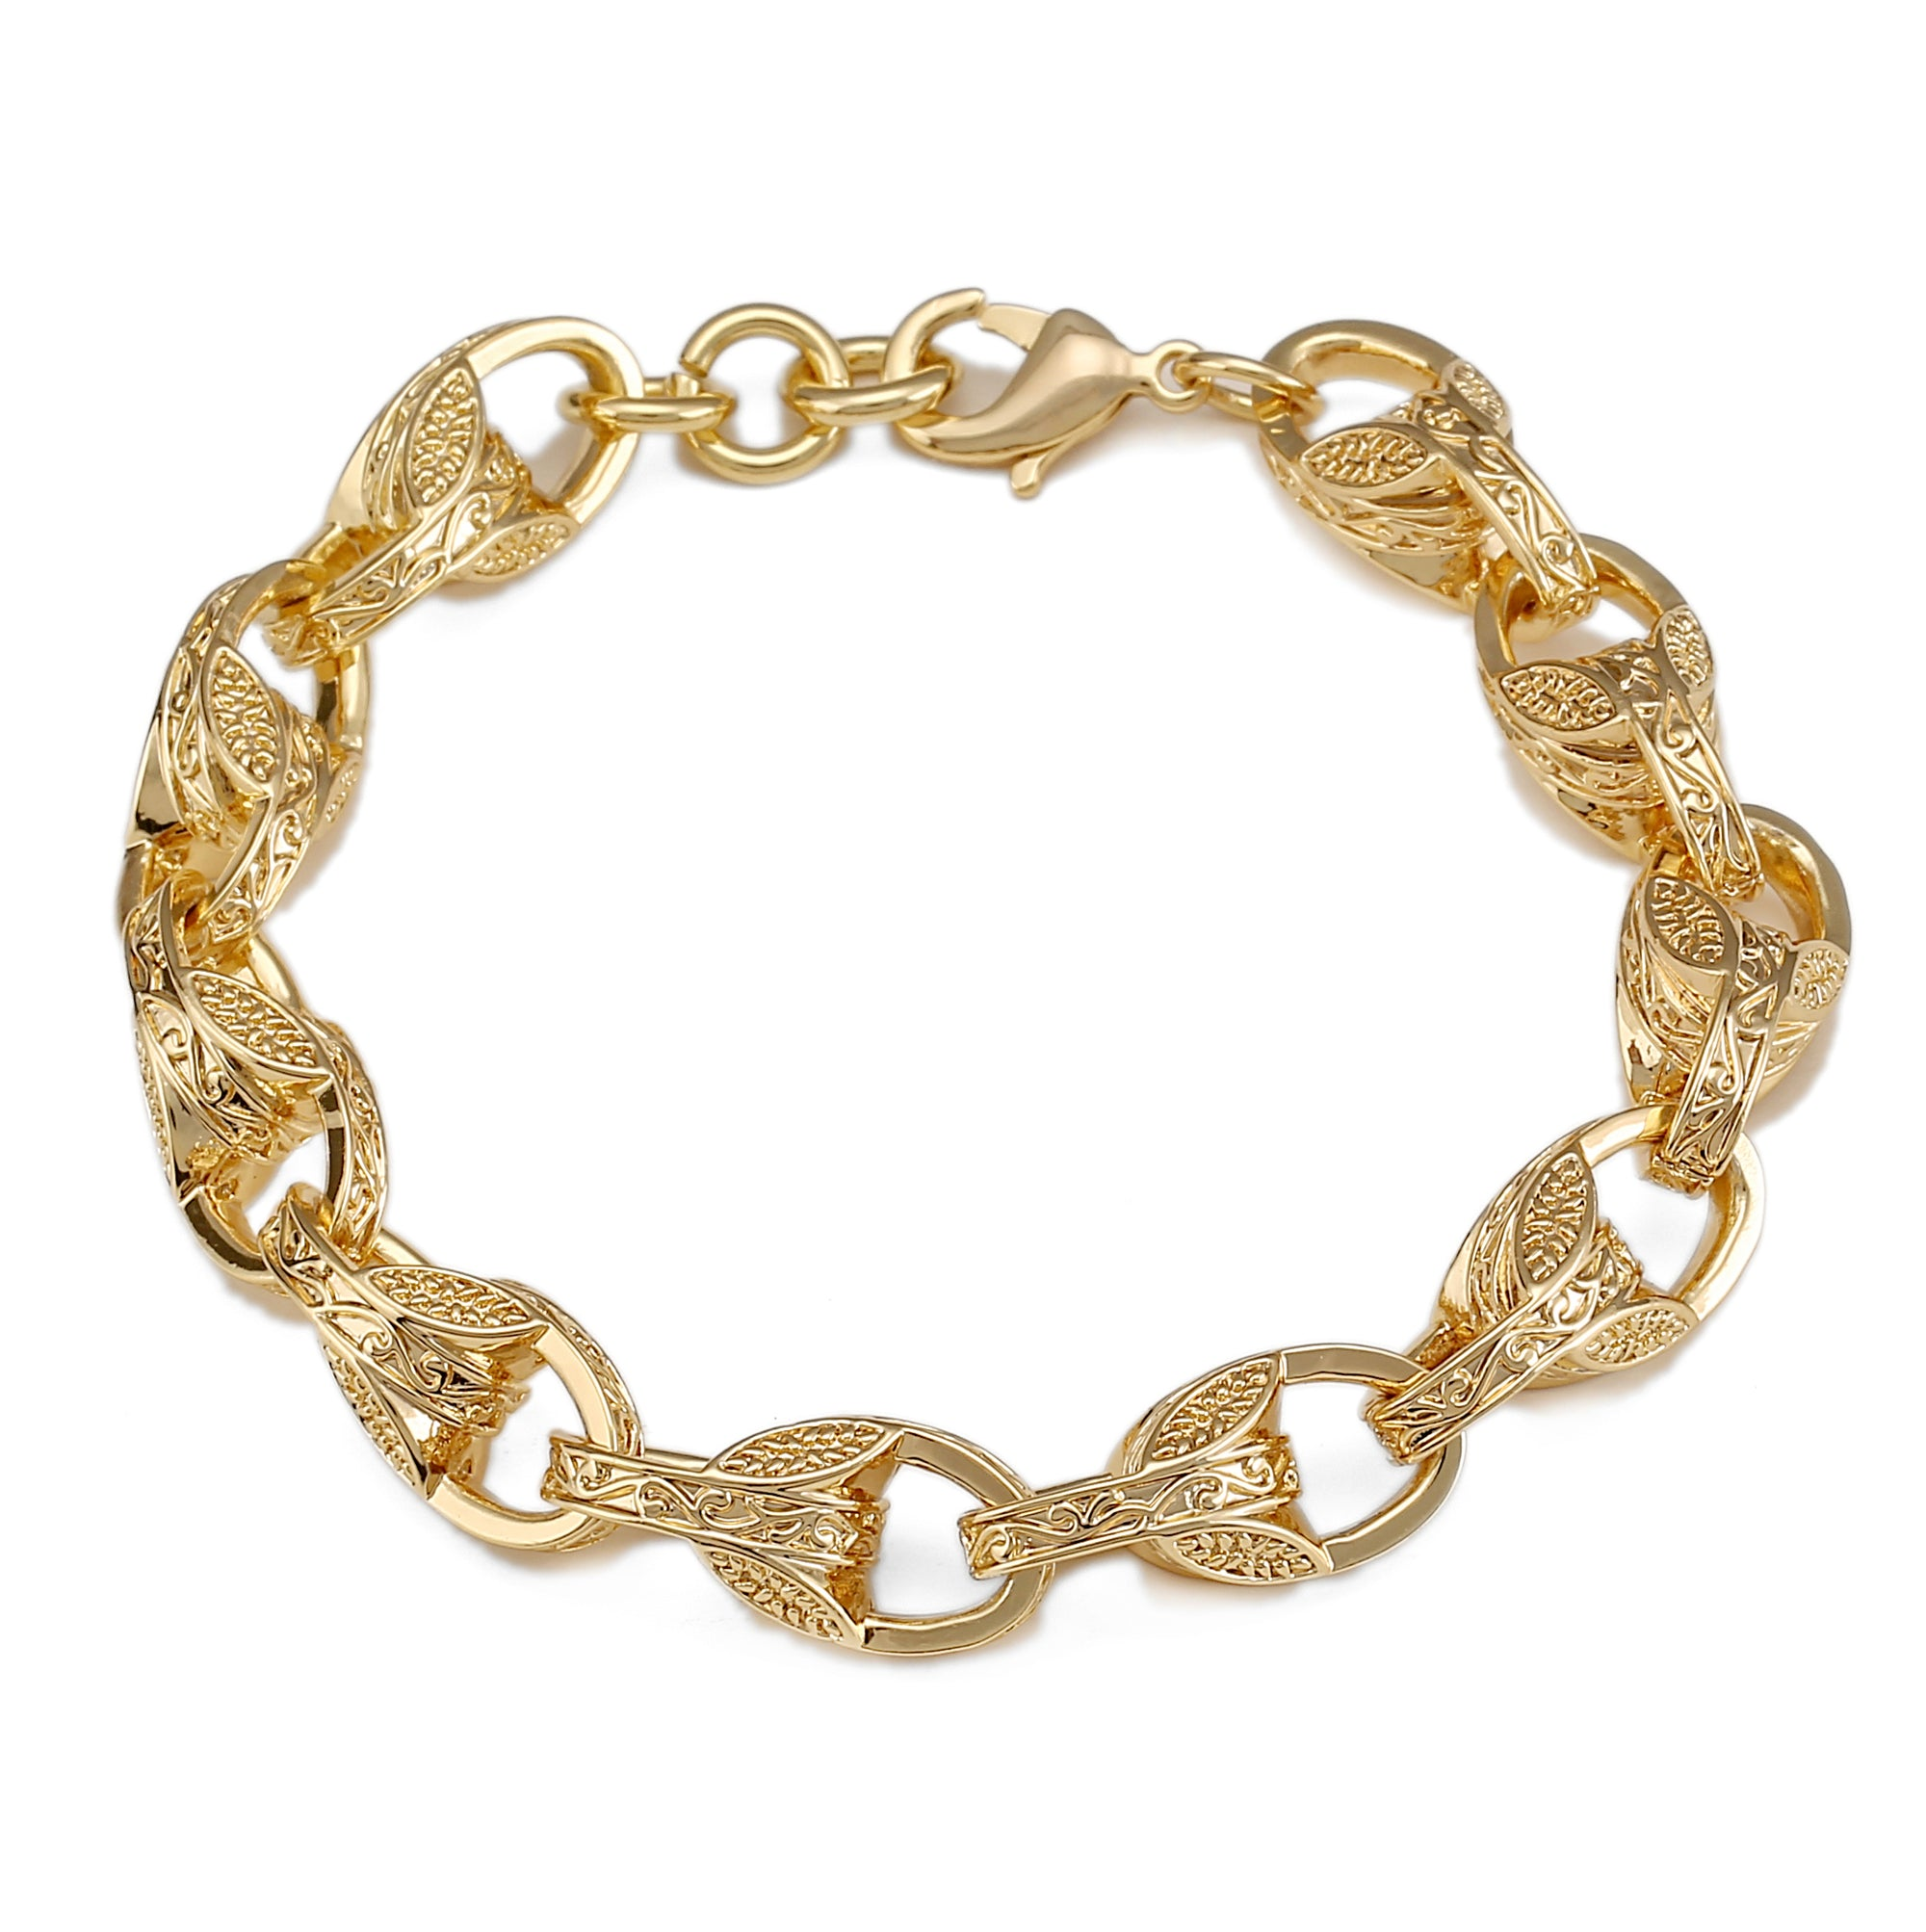 [Upgraded Quality] Gold 3D Patterned Tulip Bracelet-Bracelets-Bling King-Bling King